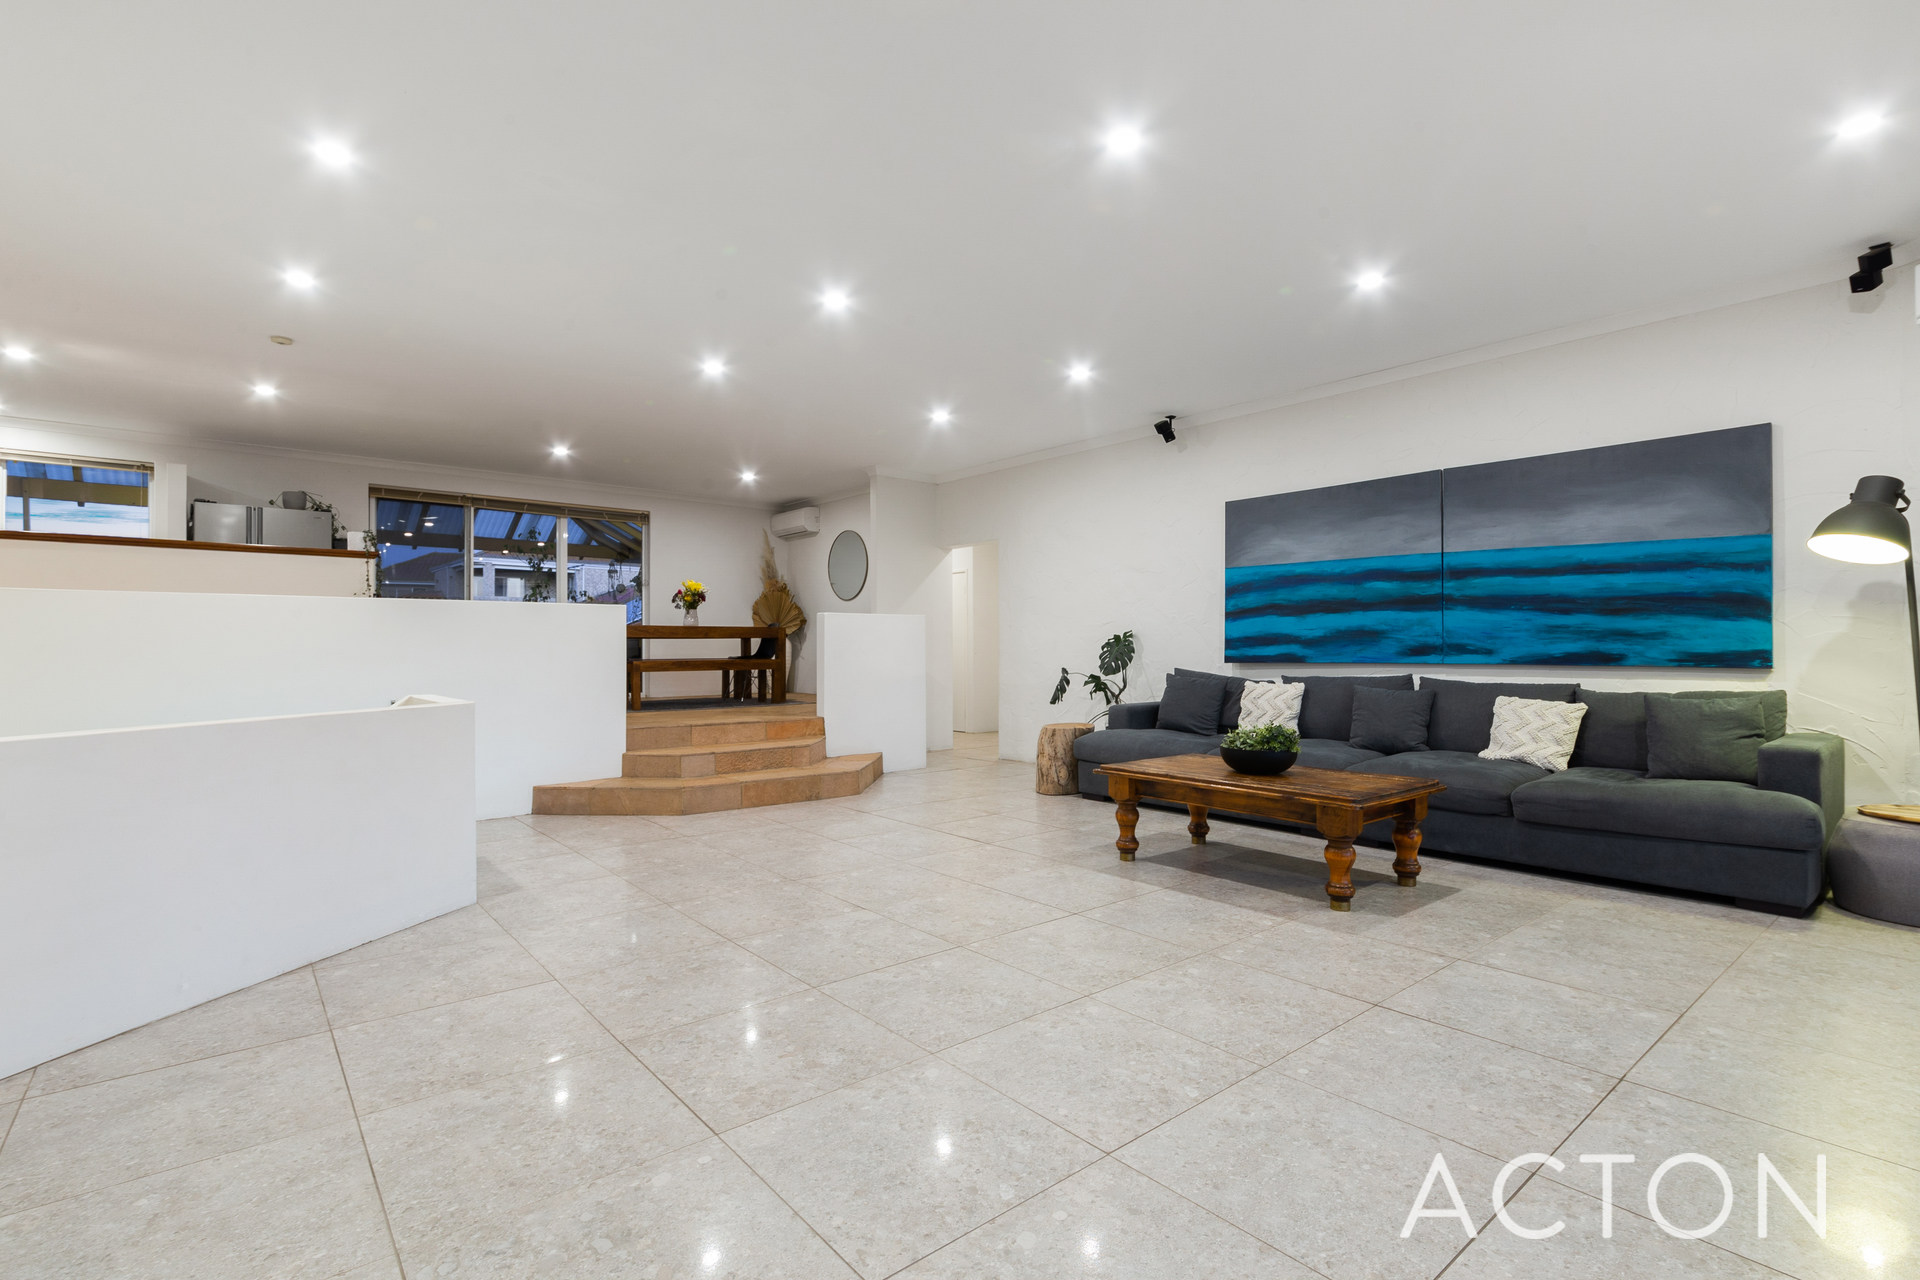 12 Geordie Court Coogee - House For Sale - 22498042 - ACTON Coogee